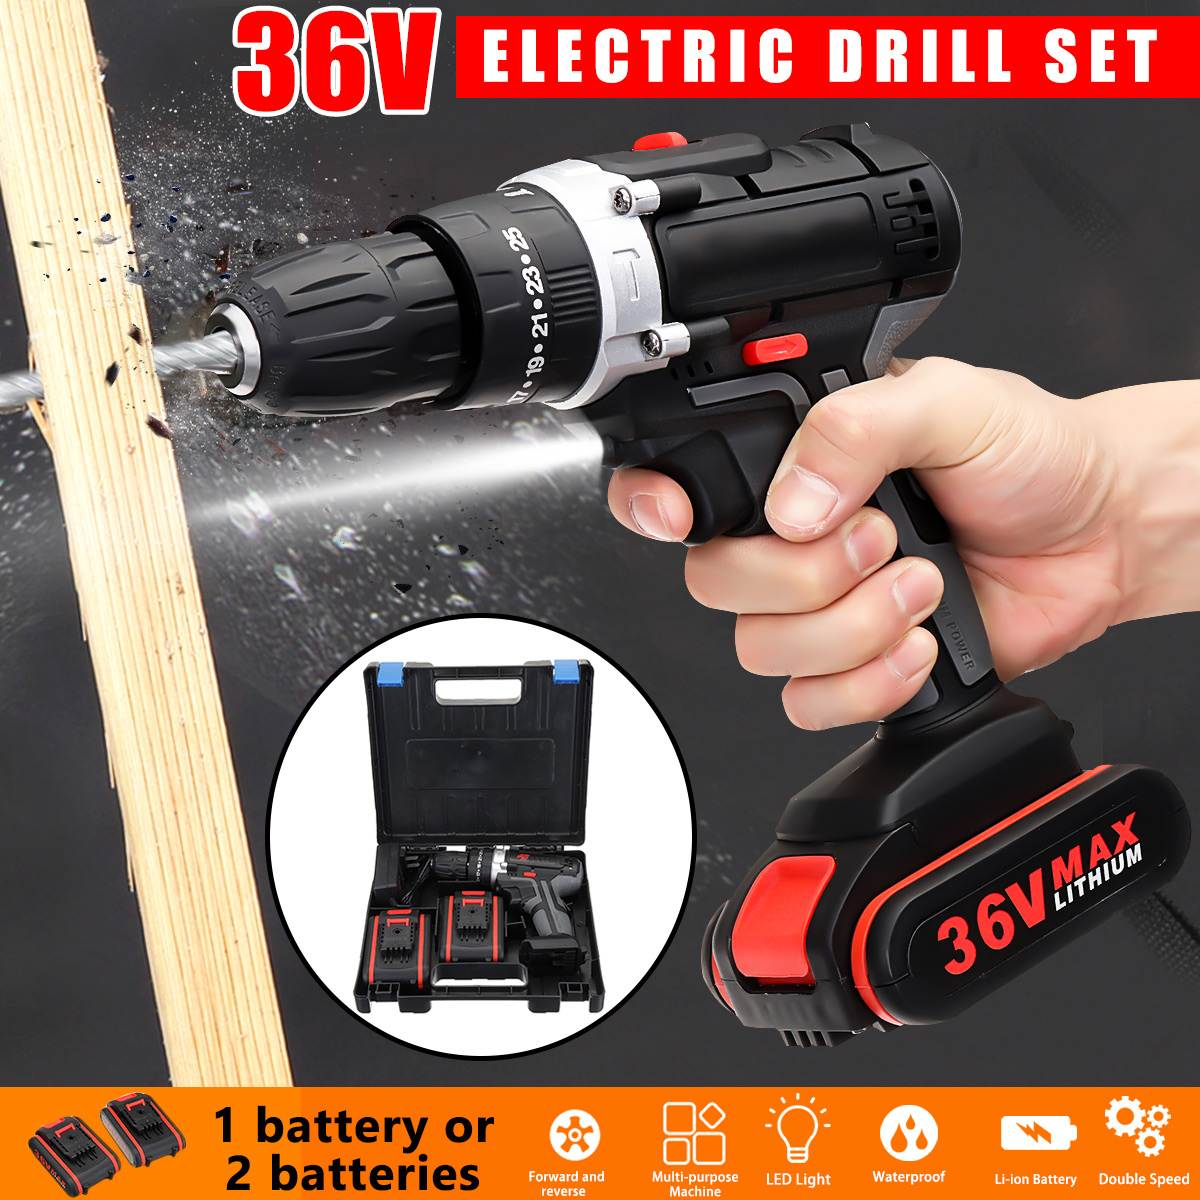 3 in 1 36V Electric Cordless <font><b>Drill</b></font> Power <font><b>Driver</b></font> Lithium-Ion <font><b>Battery</b></font> Rechargable Screwdriver <font><b>Drill</b></font> Machine 18+1 Torque Power Tool image